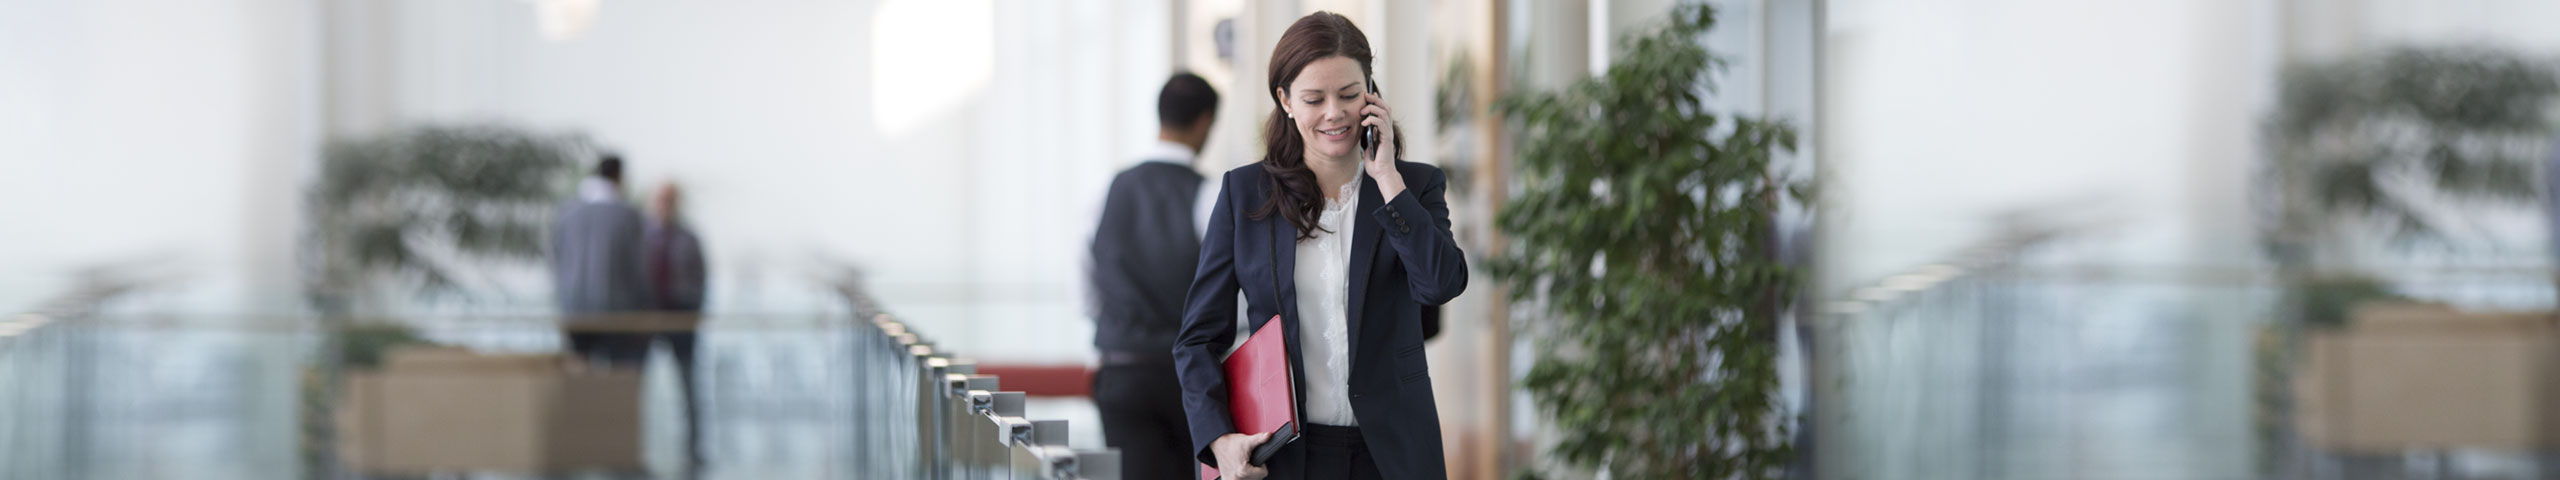 businesswoman speaking on the phone